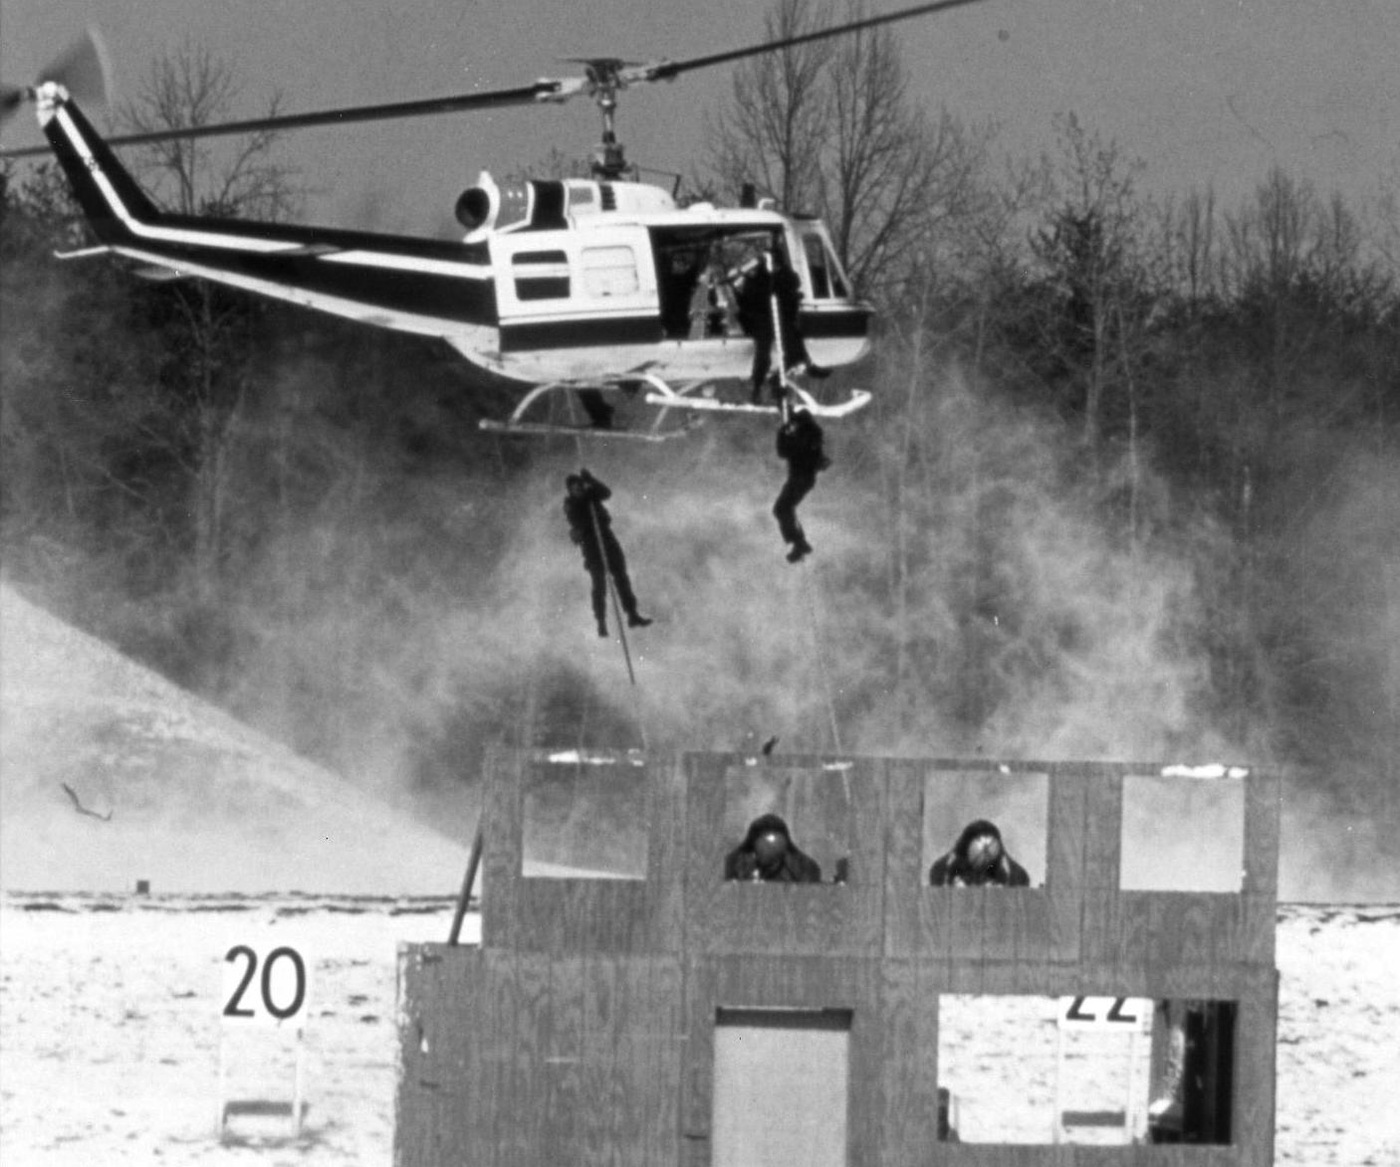 Hostage Rescue Team training exercise with HRT members rappelling from a helicopter in the 1990s.